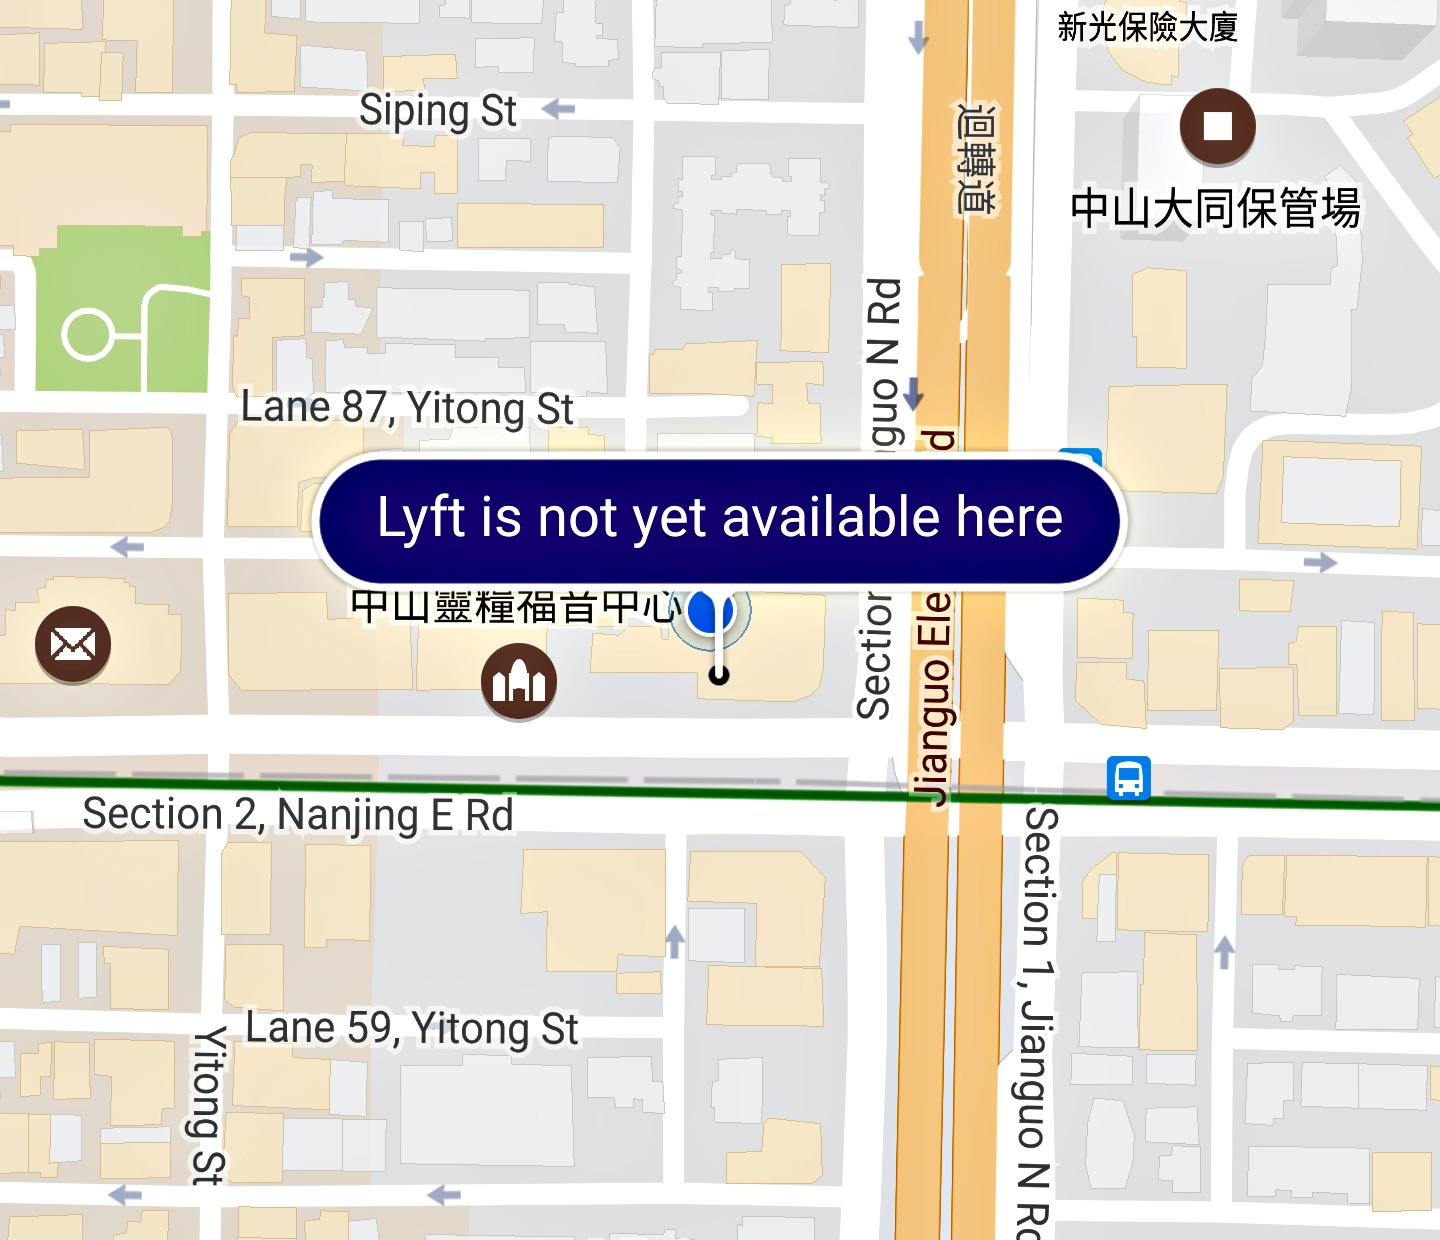 Update: Is Lyft available in Taipei, Taoyuan or anywhere in Taiwan?